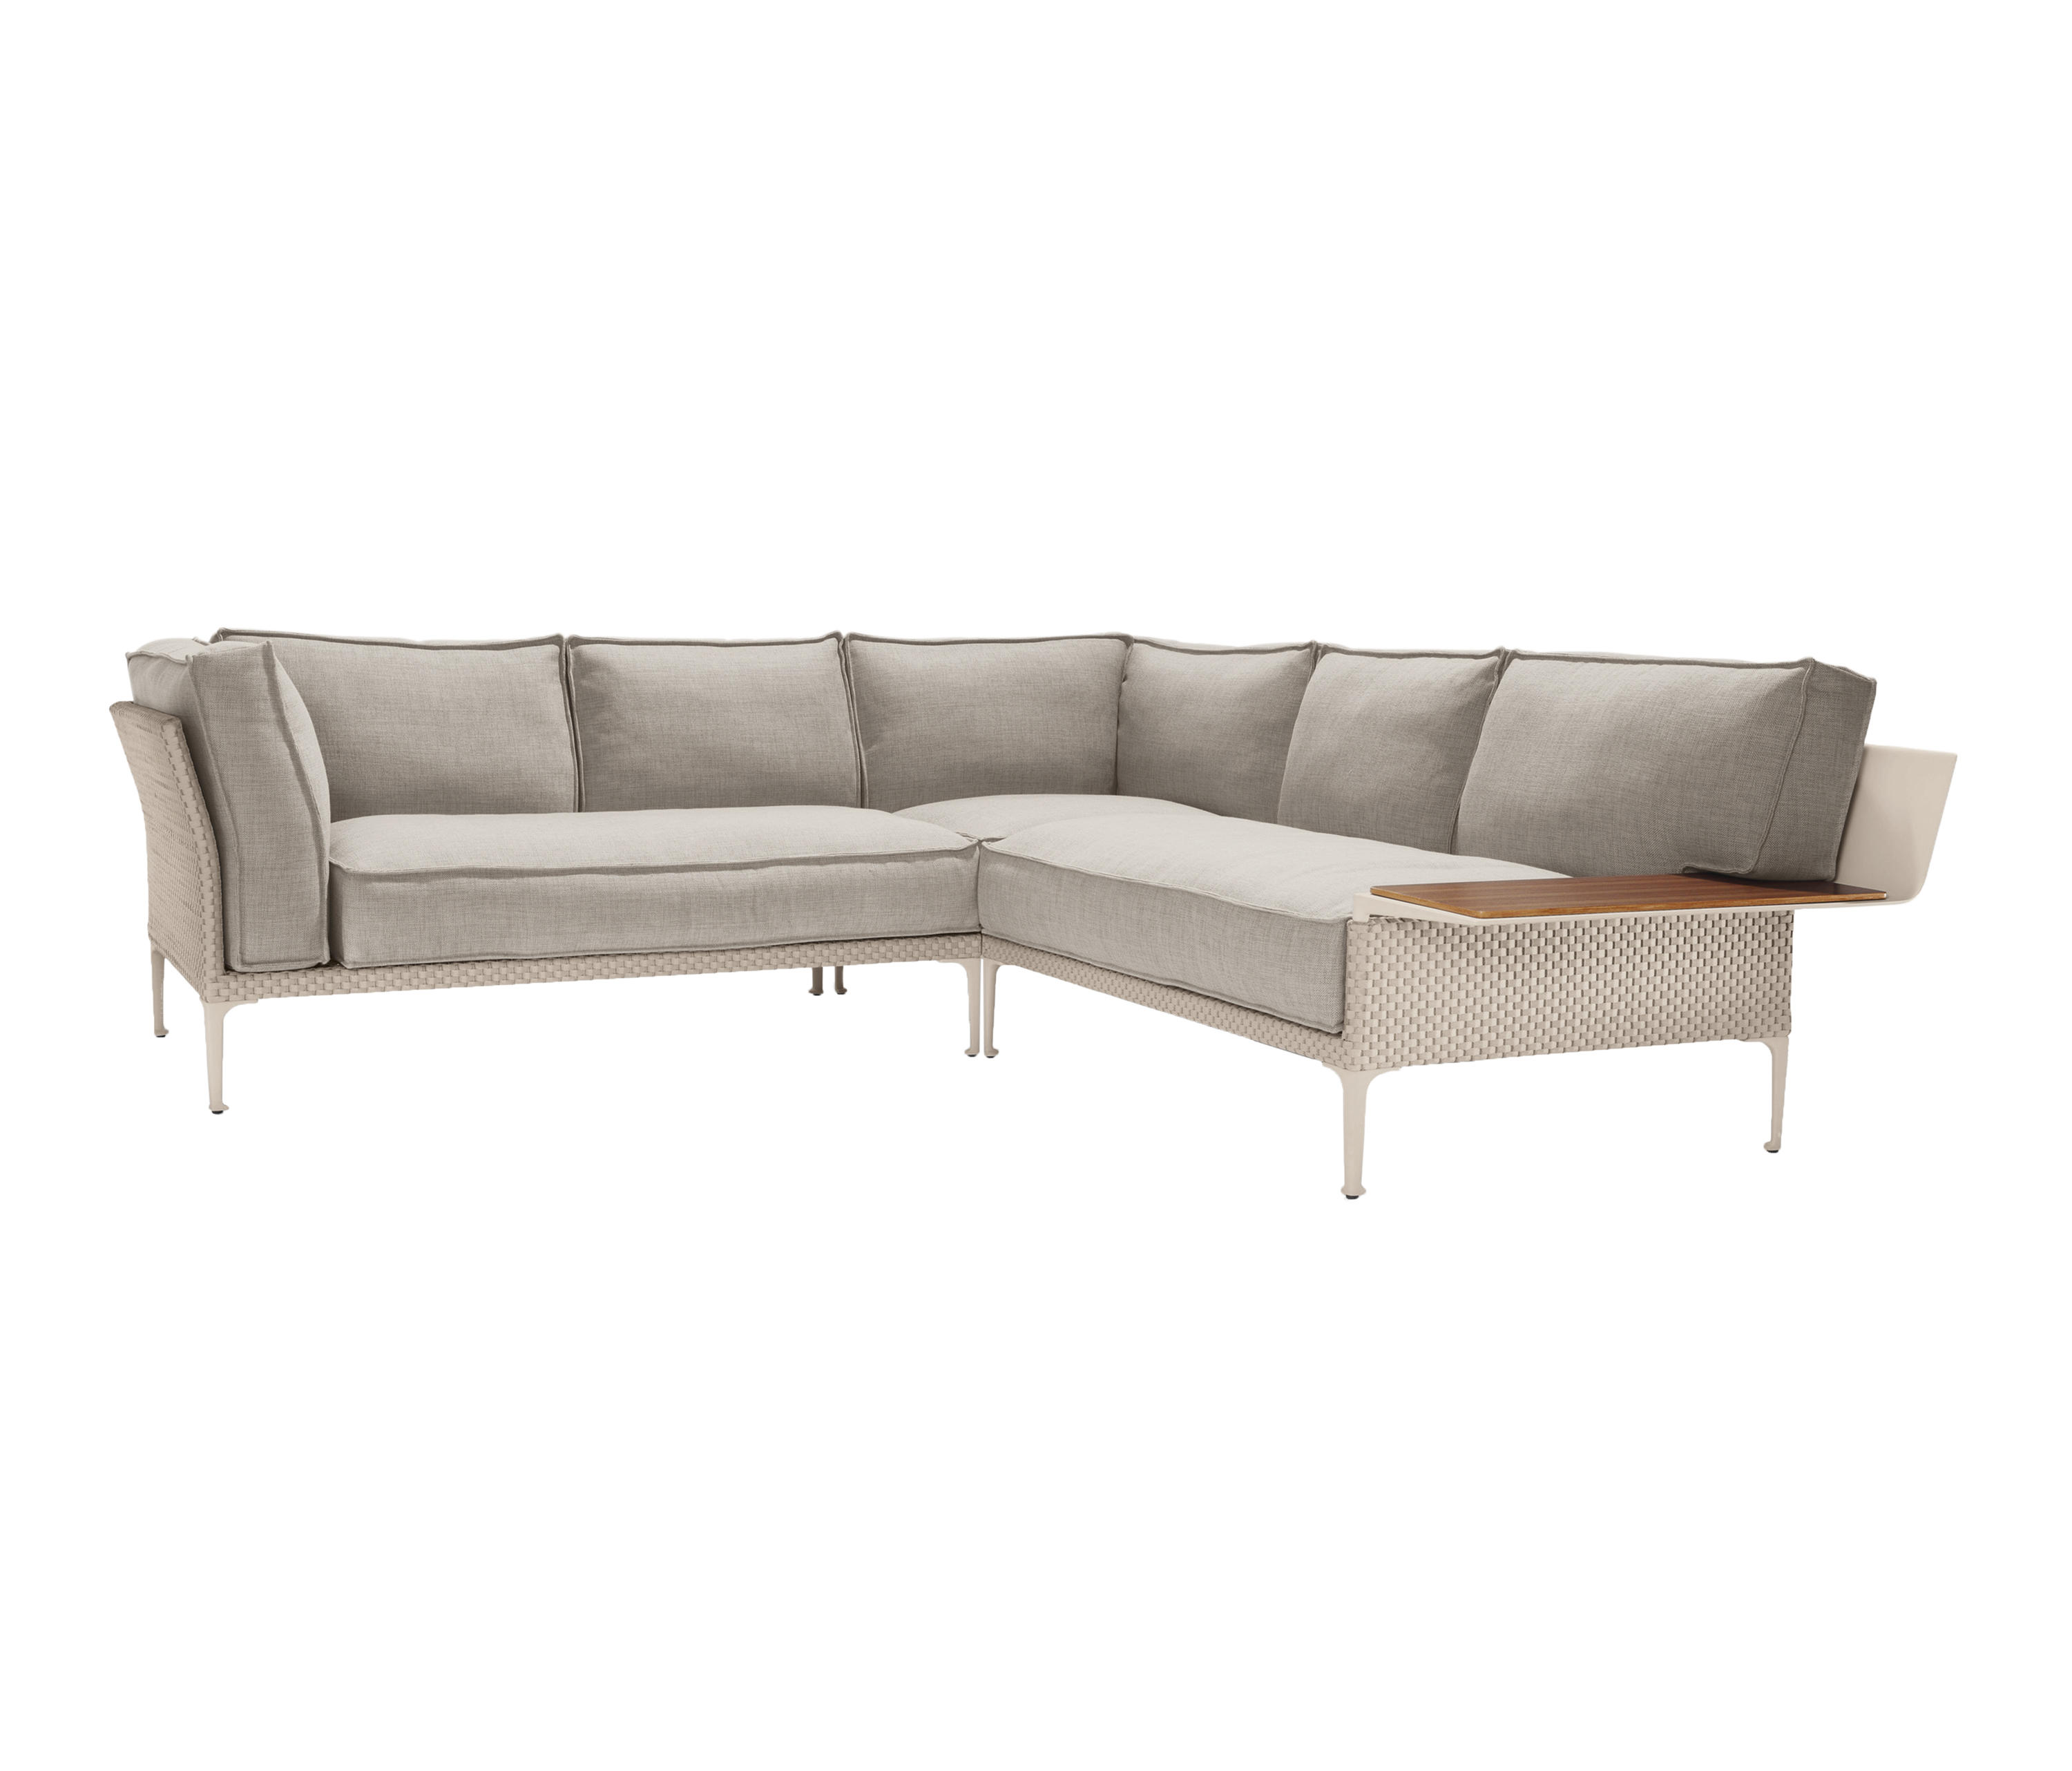 rayn modular sofa system garden sofas from dedon. Black Bedroom Furniture Sets. Home Design Ideas